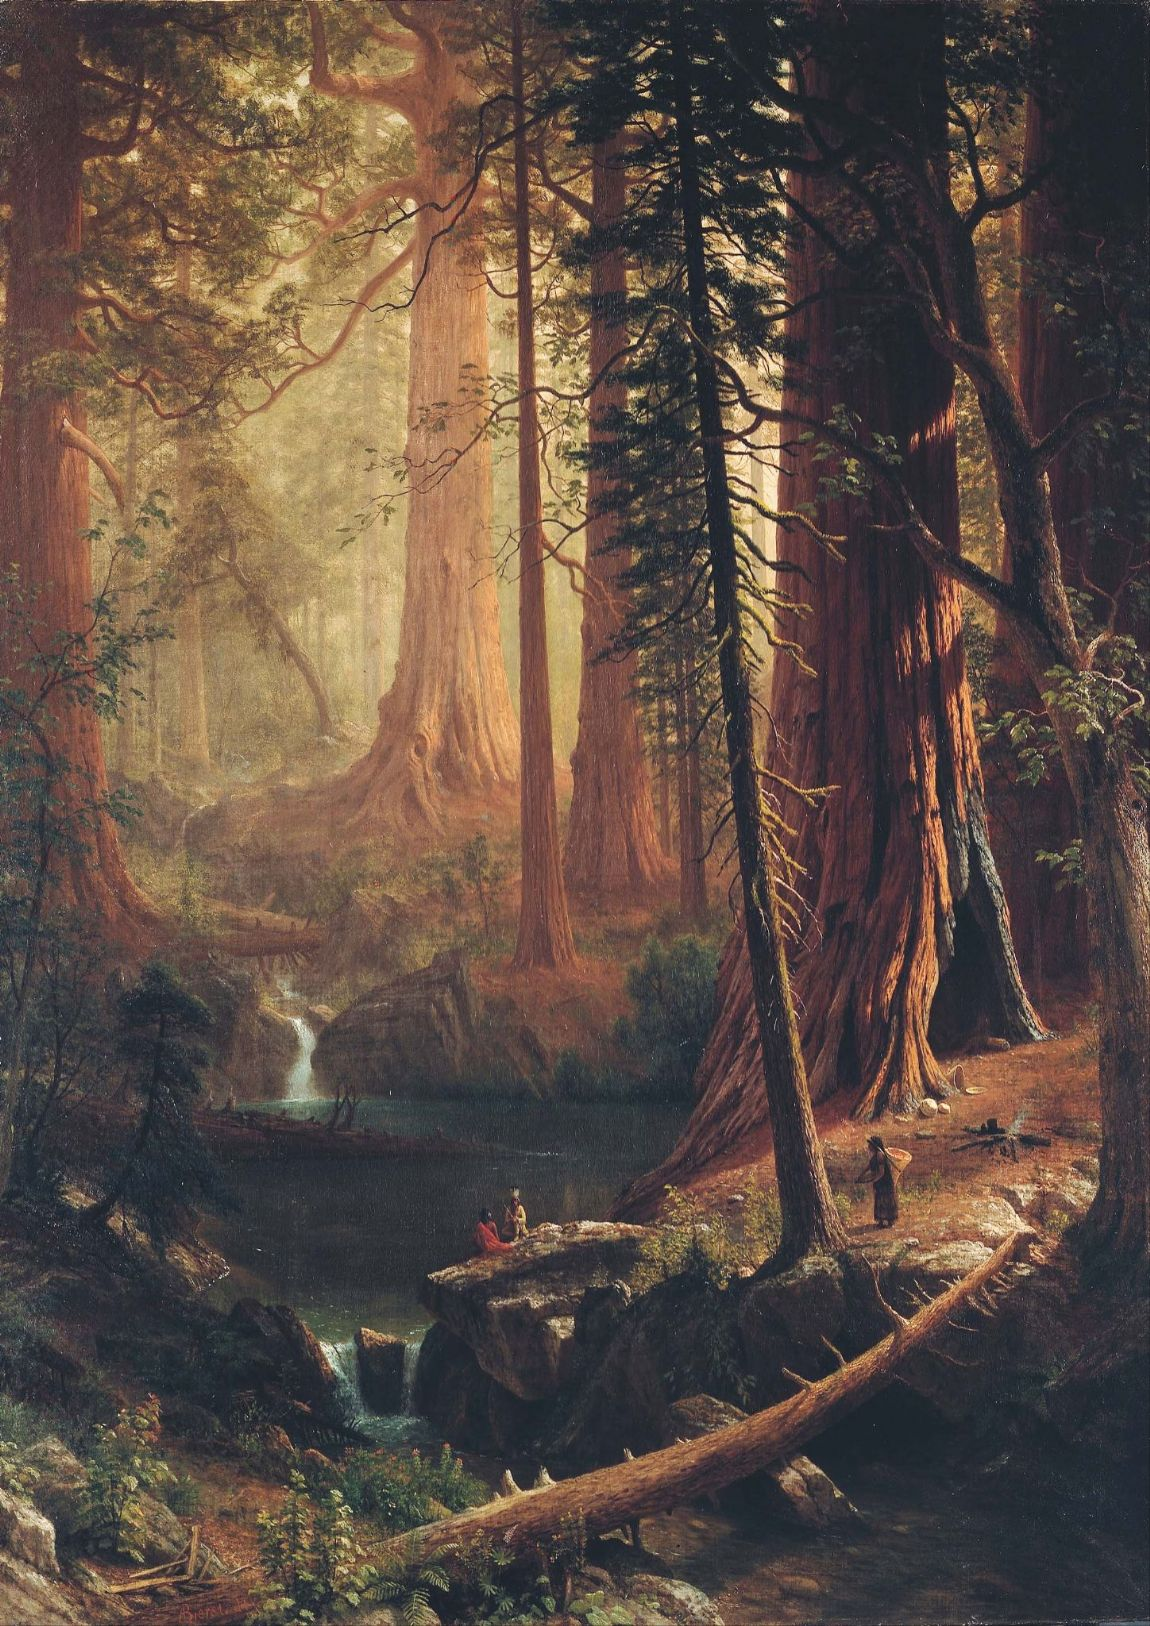 Bierstadt, Albert: Giant Redwood Trees of California. Fine Art Print/Poster. Sizes: A4/A3/A2/A1 (004049)